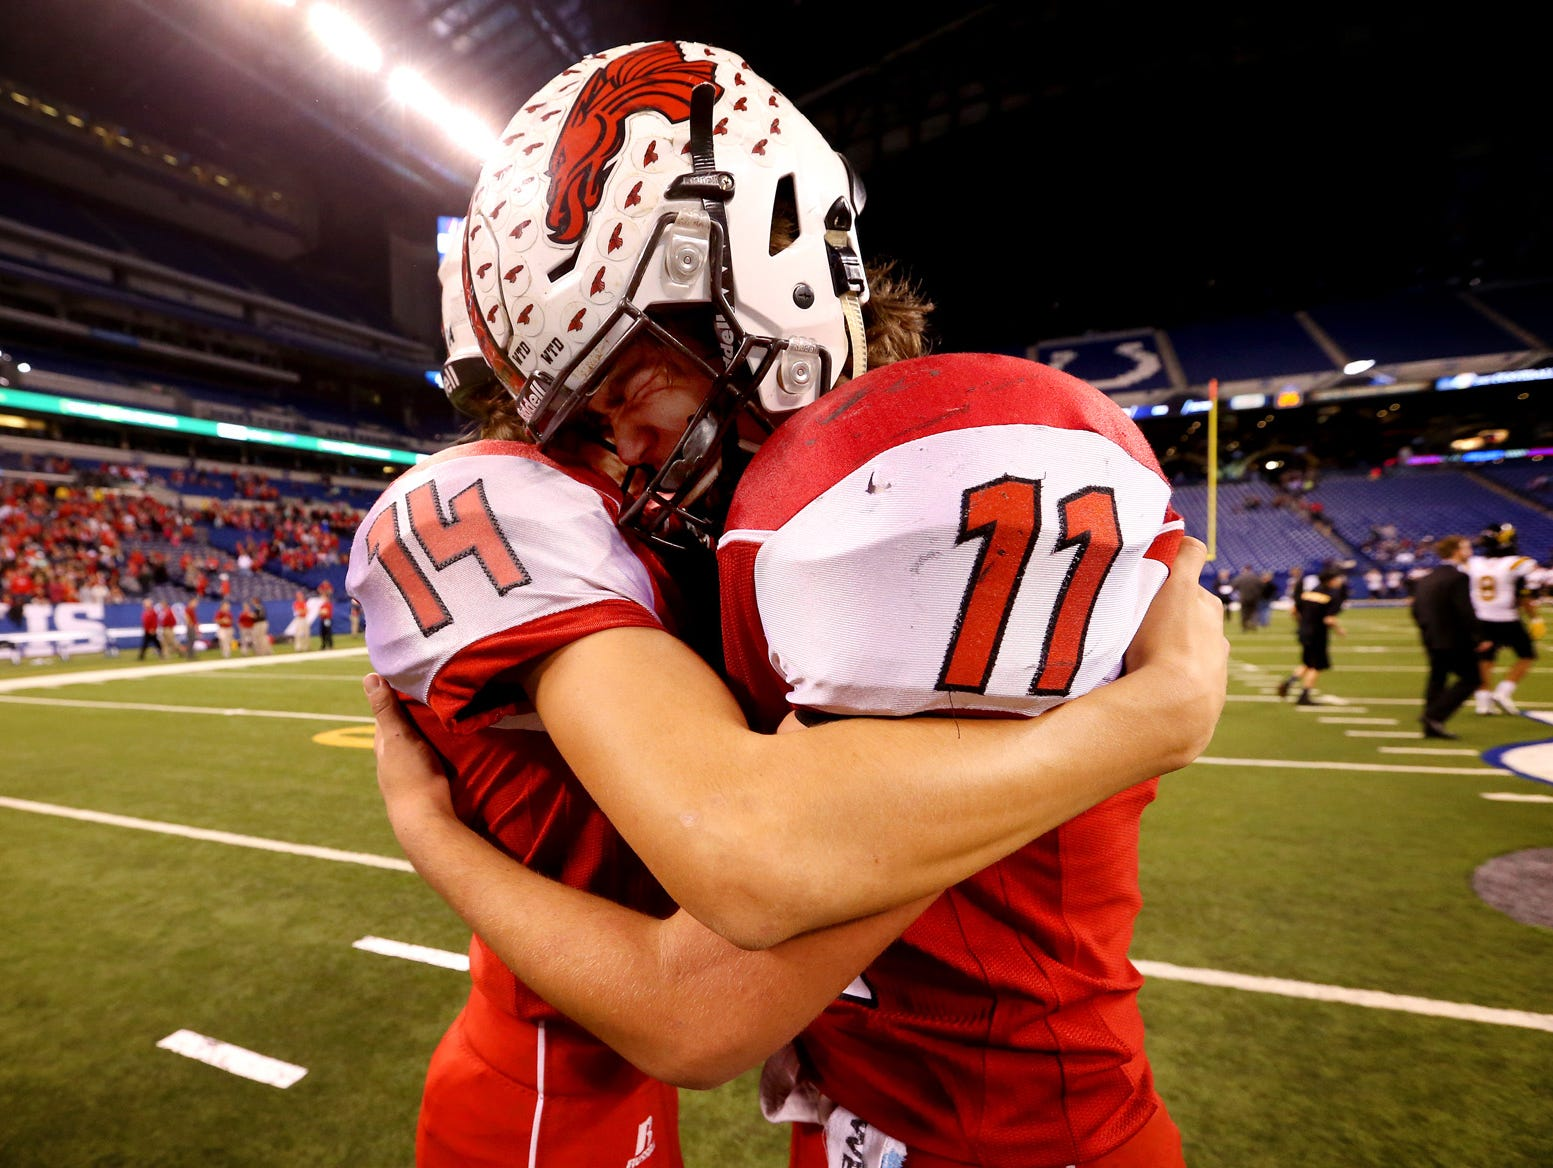 New Palestine's Zach Neligh (14) comforts quarterback Alex Neligh (11) after a tough loss in the Class 5A IHSAA Football State Tournament finals against Fort Wayne Snider at Lucas Oil Stadium on Nov. 27, 2015.